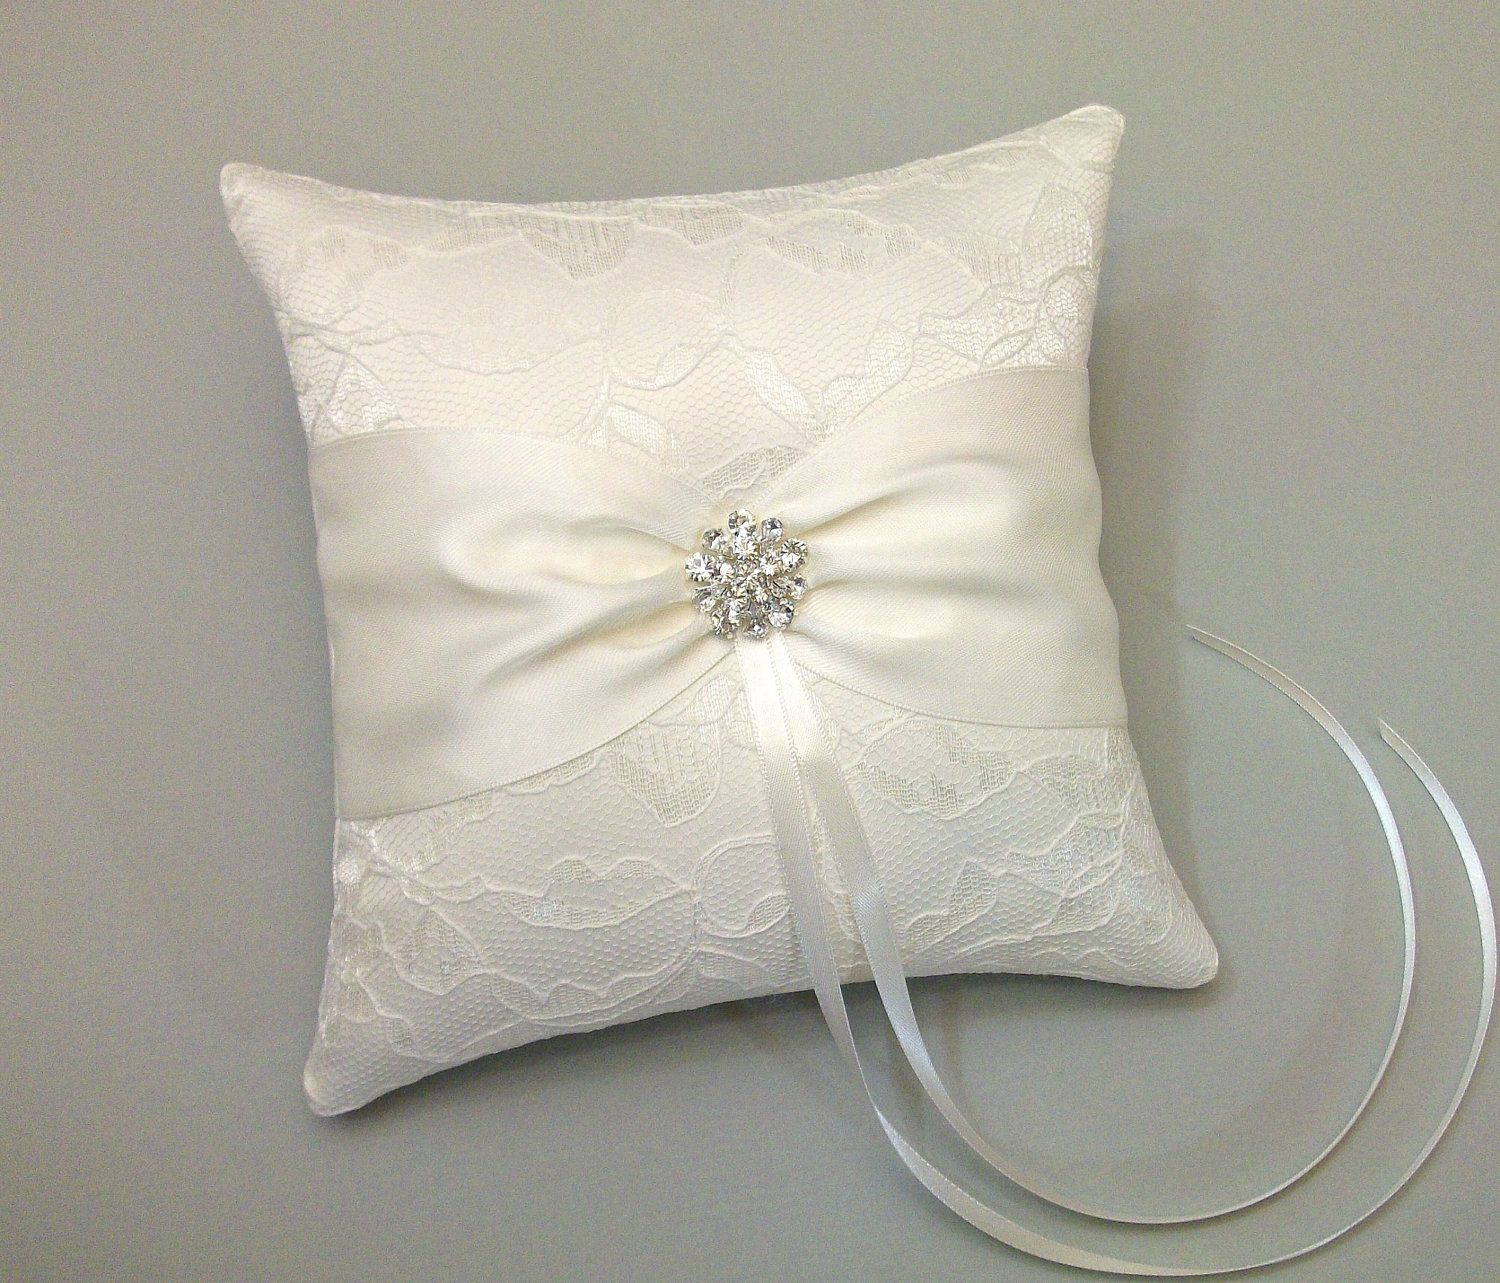 store product ribbon pearl new ceremony satin pillows wedding party pillow supplies ivory bearer ring white